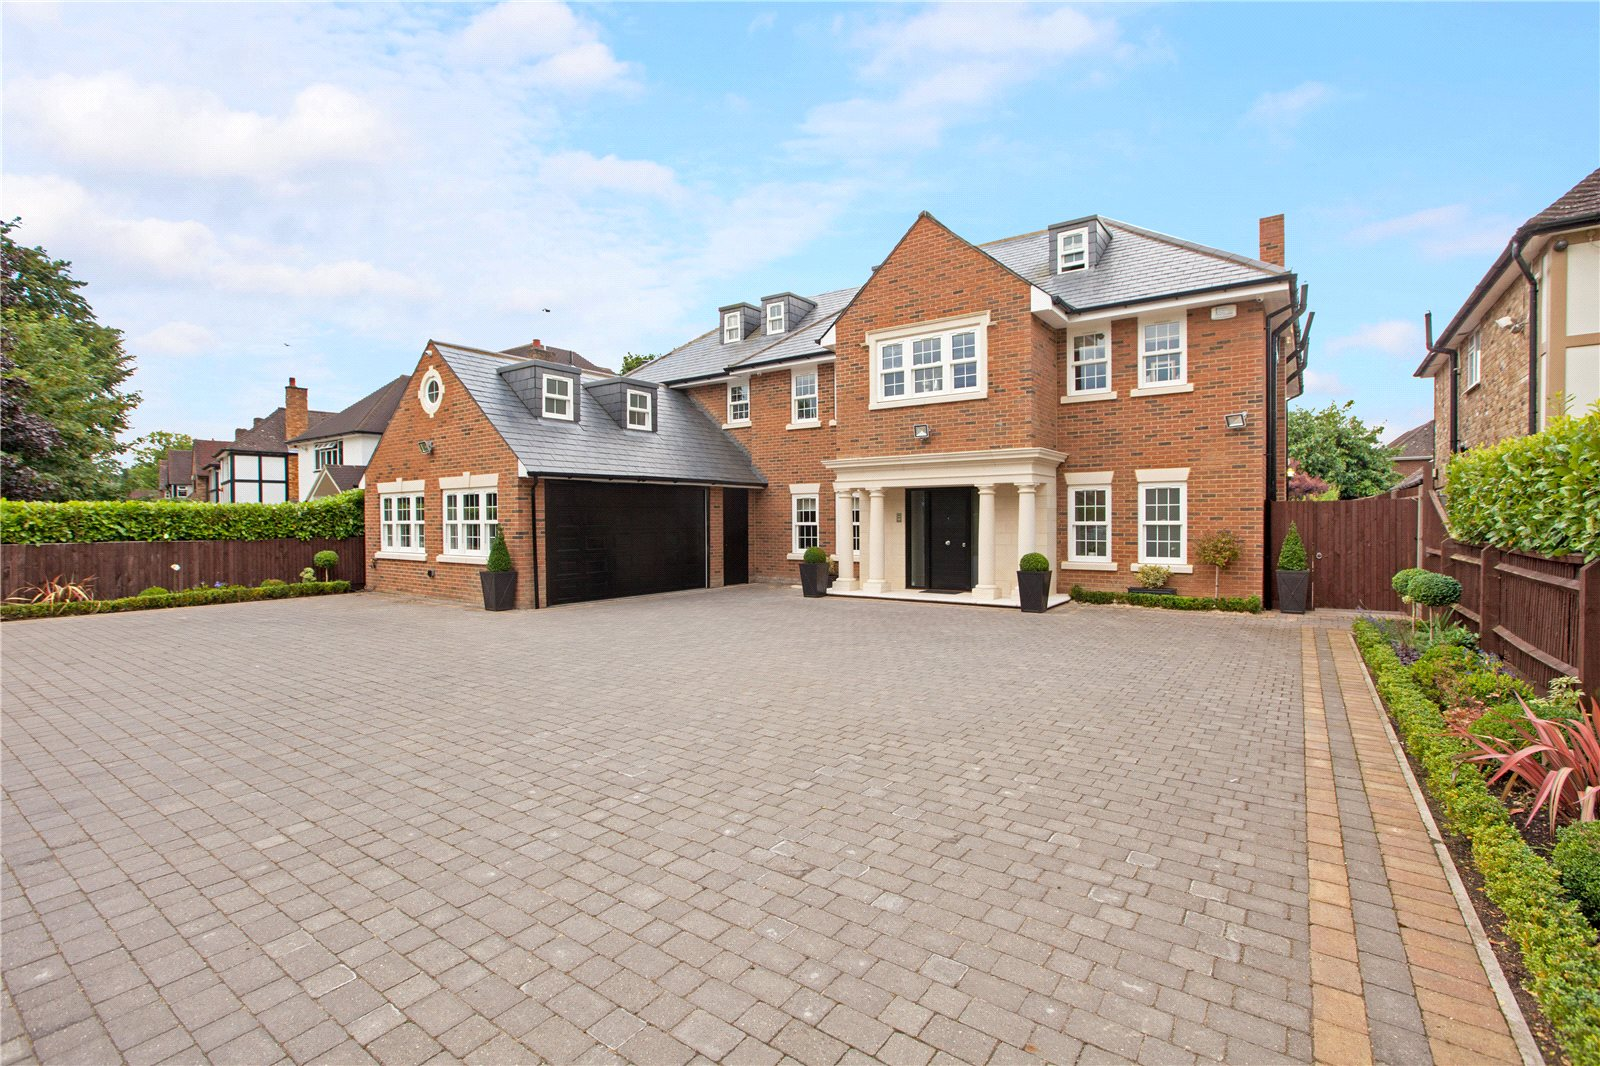 Single Family Home for Sale at Dukes Wood Drive, Gerrards Cross, Buckinghamshire, SL9 Gerrards Cross, England